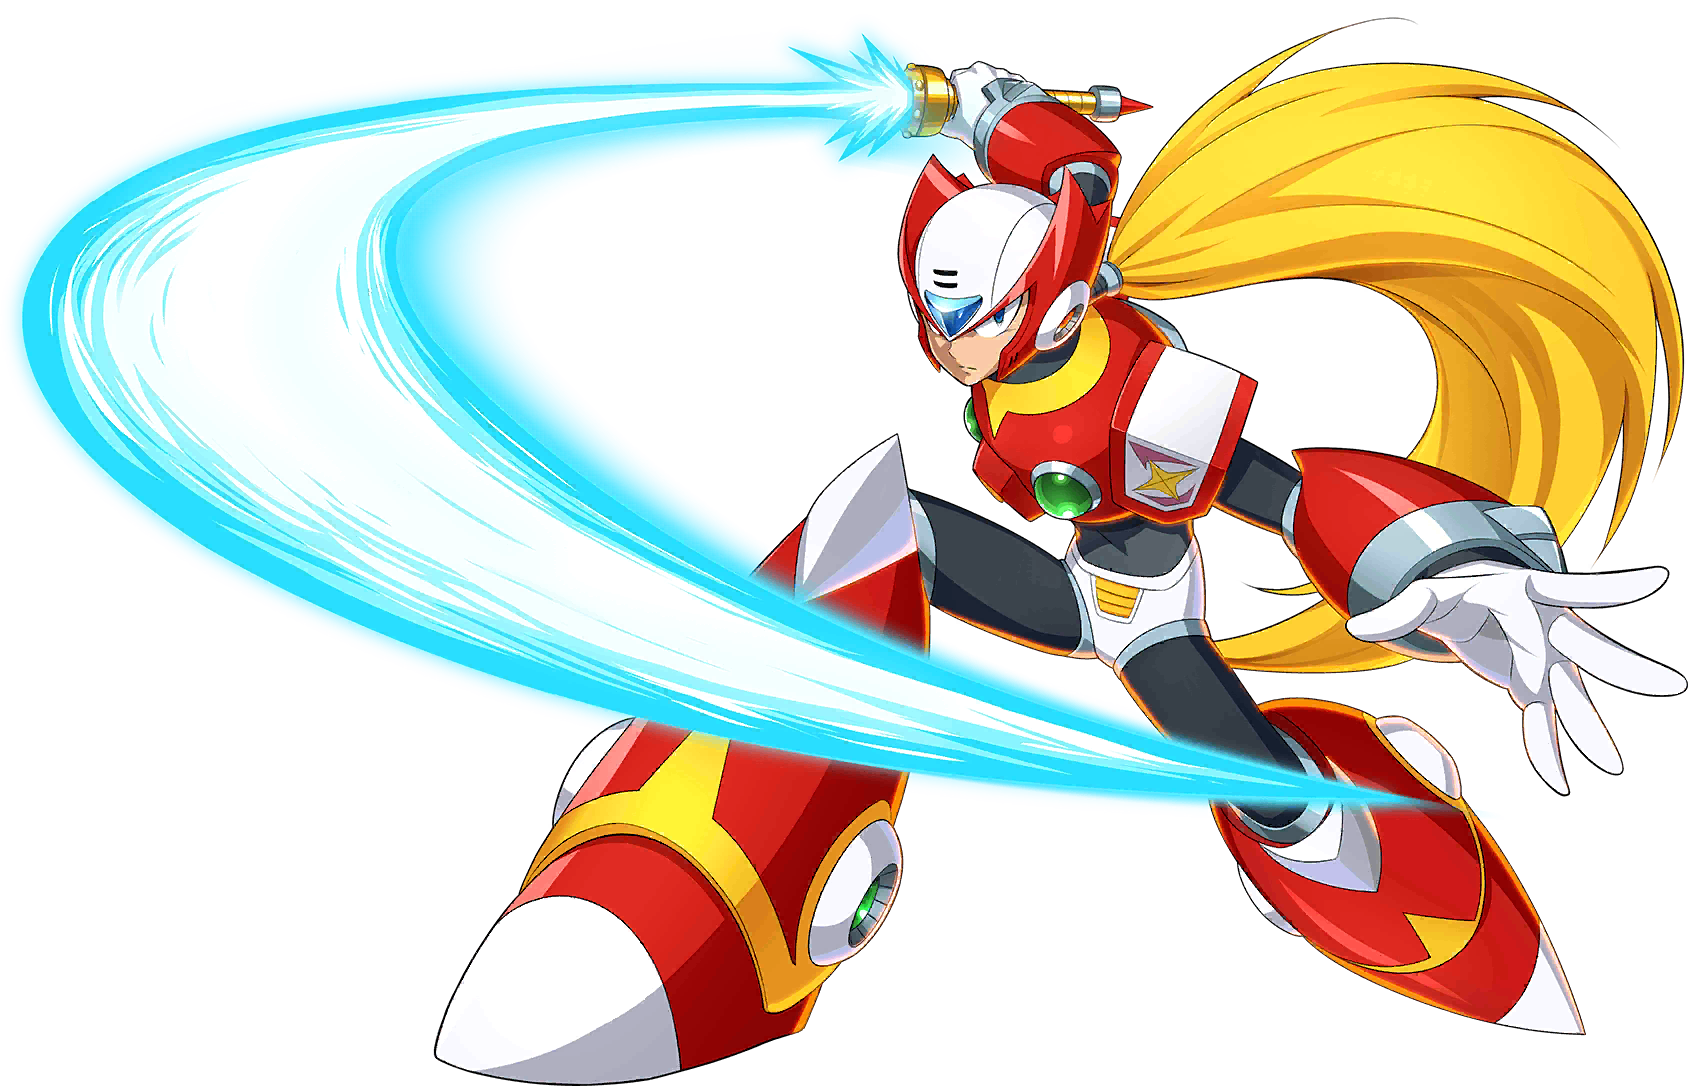 The character Zero from various titles across different Mega Man sub-series.